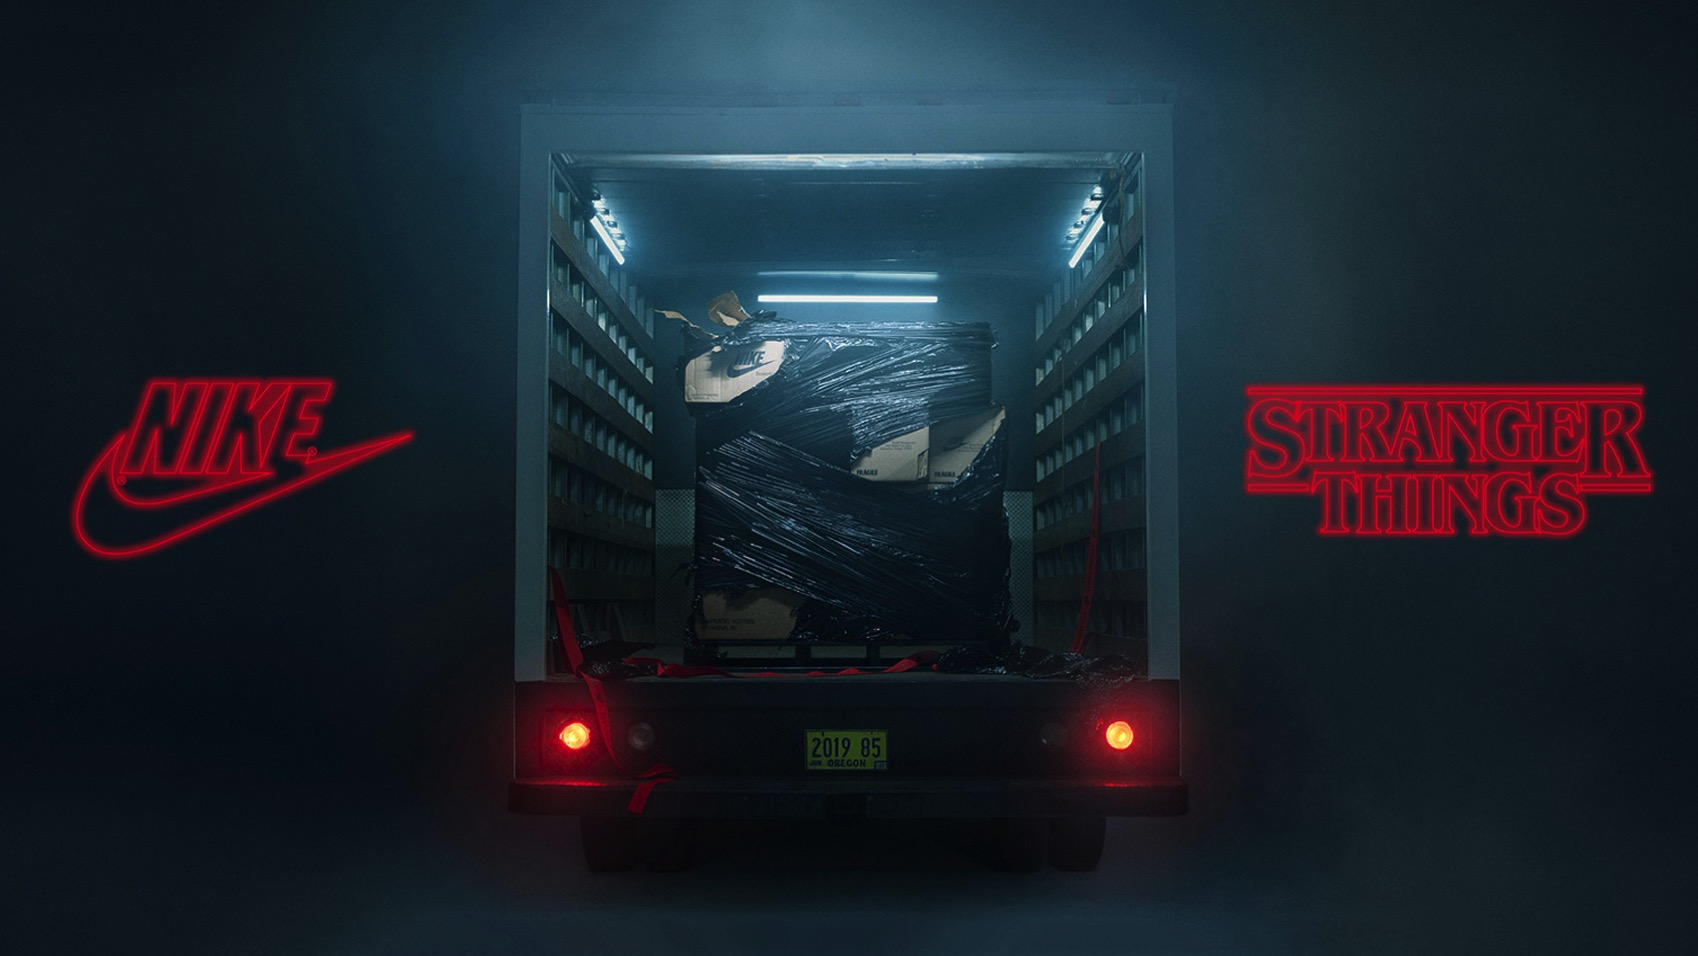 Nike stranger things design dezeen 2364 hero 1